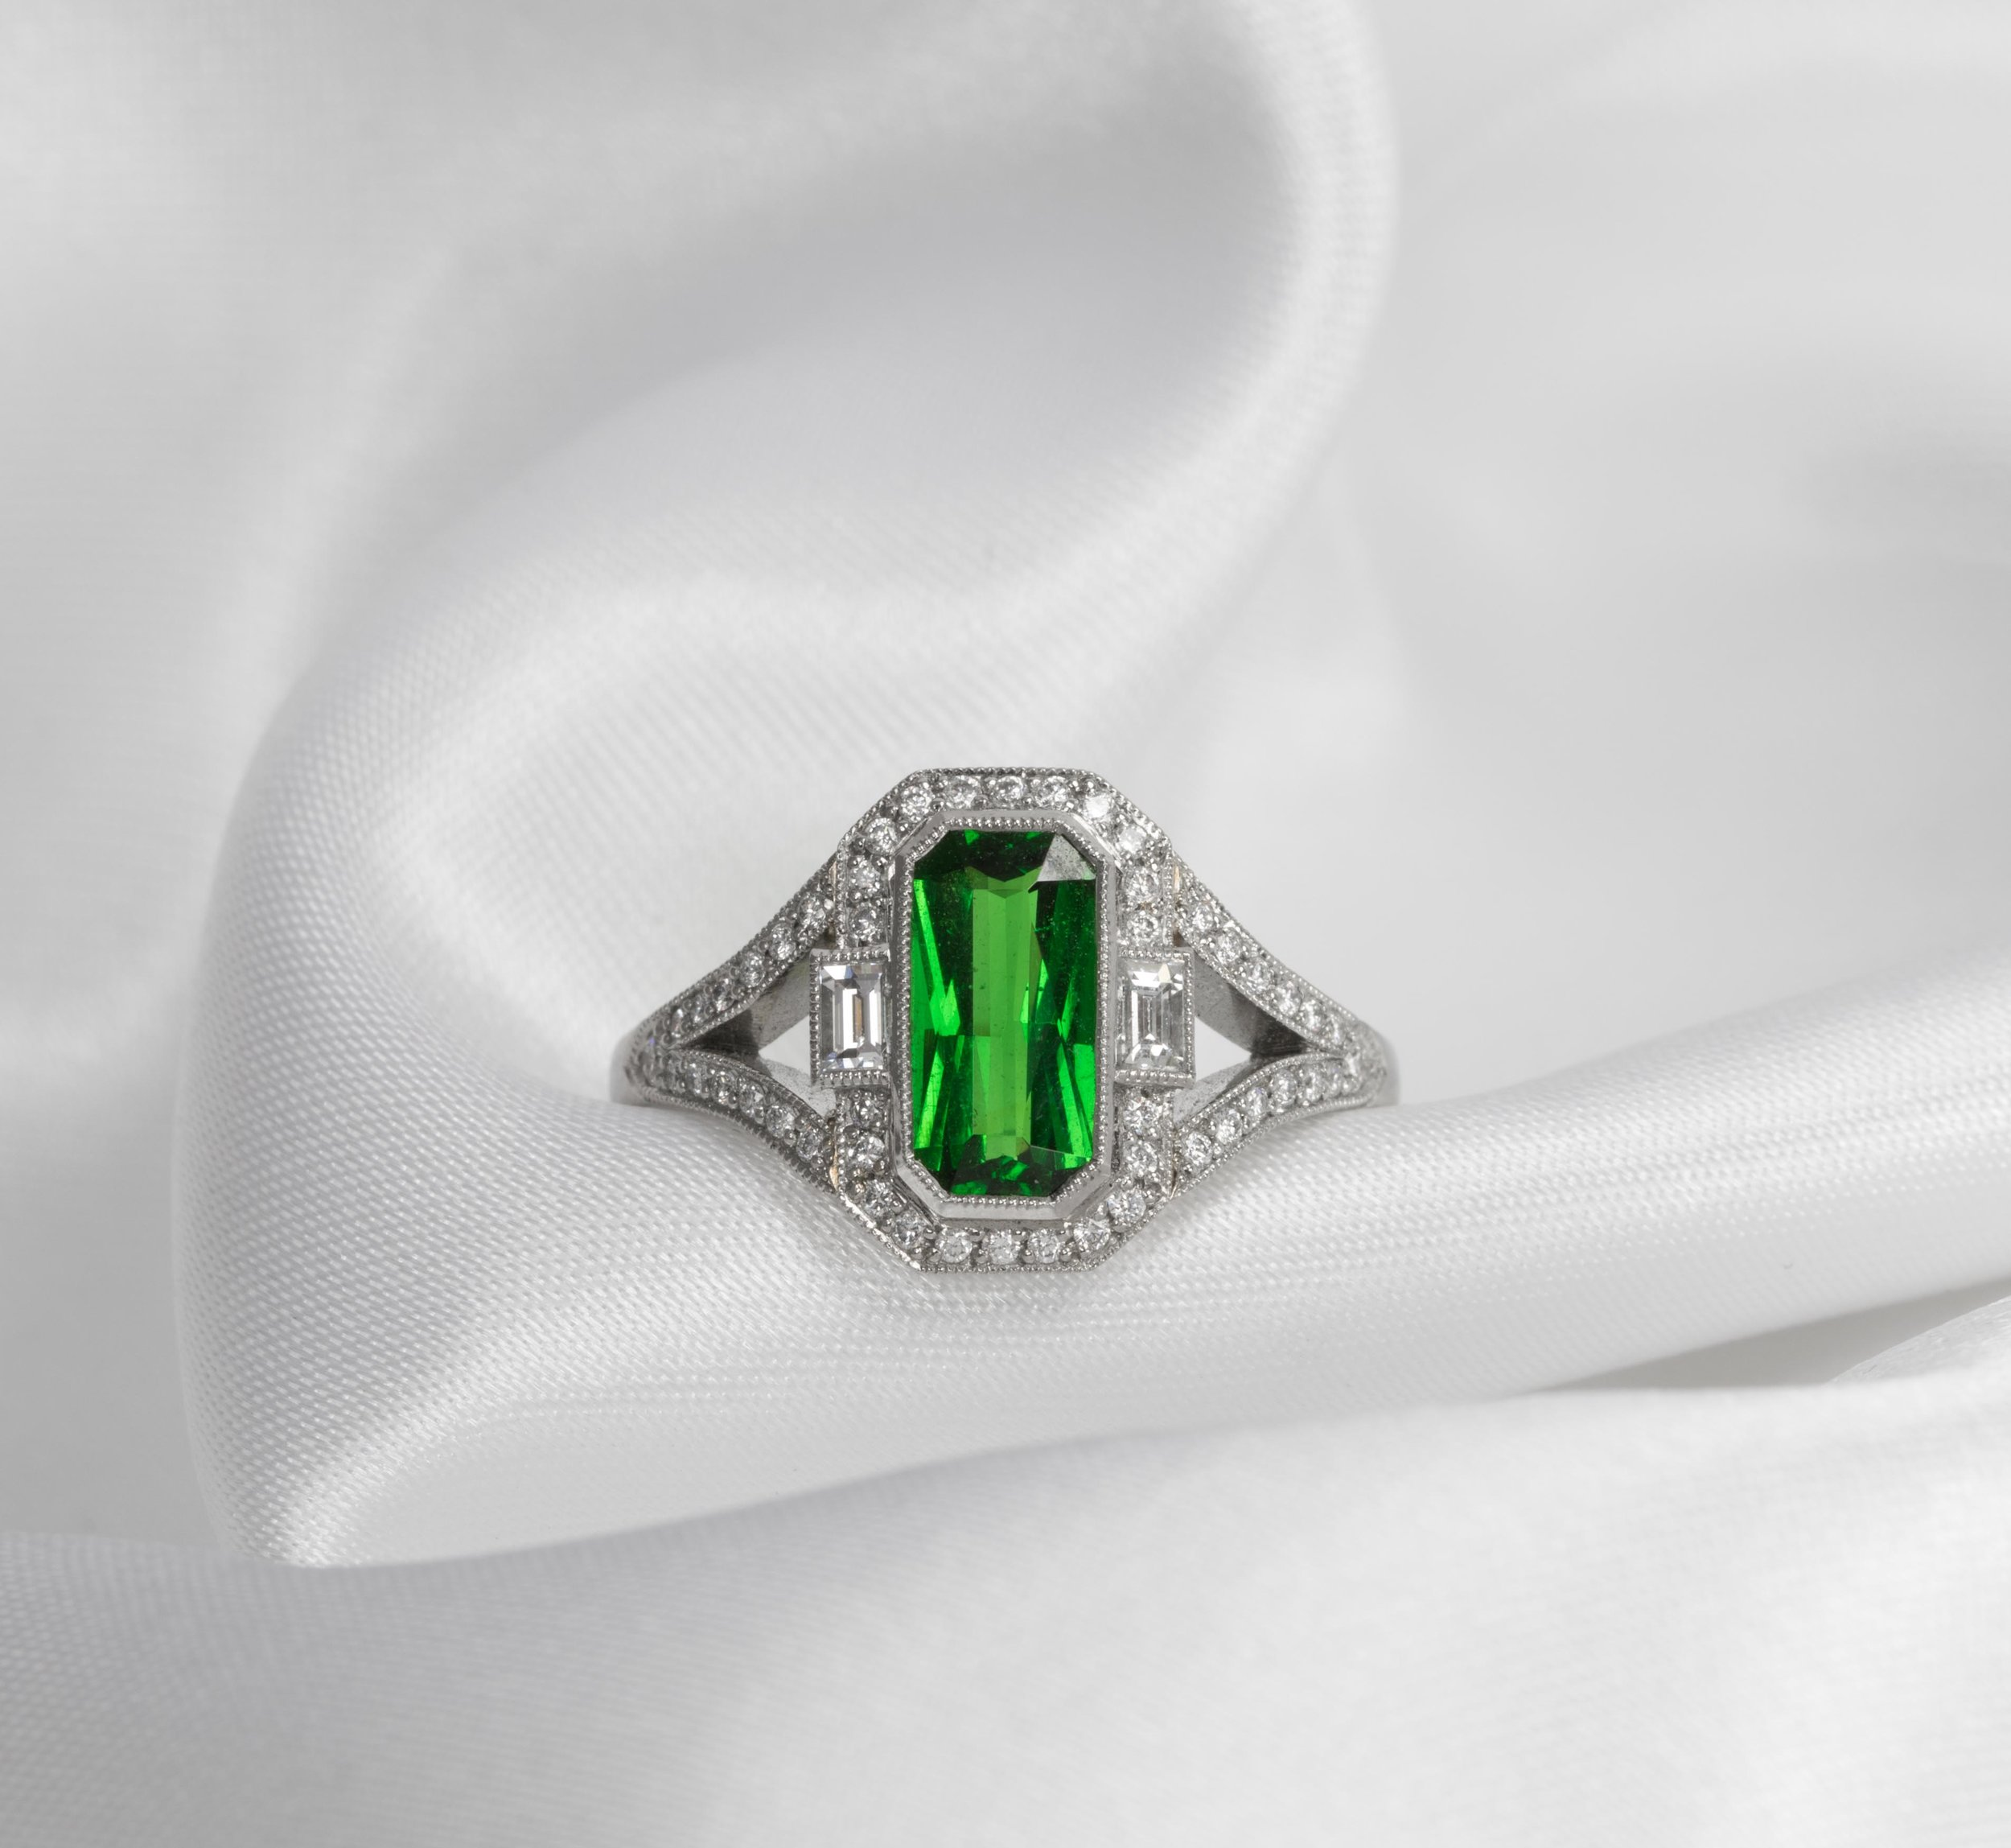 18ct white gold mounted Tsavorite garnet and diamond Art Deco style cluster ring. Made in Chichester, England.